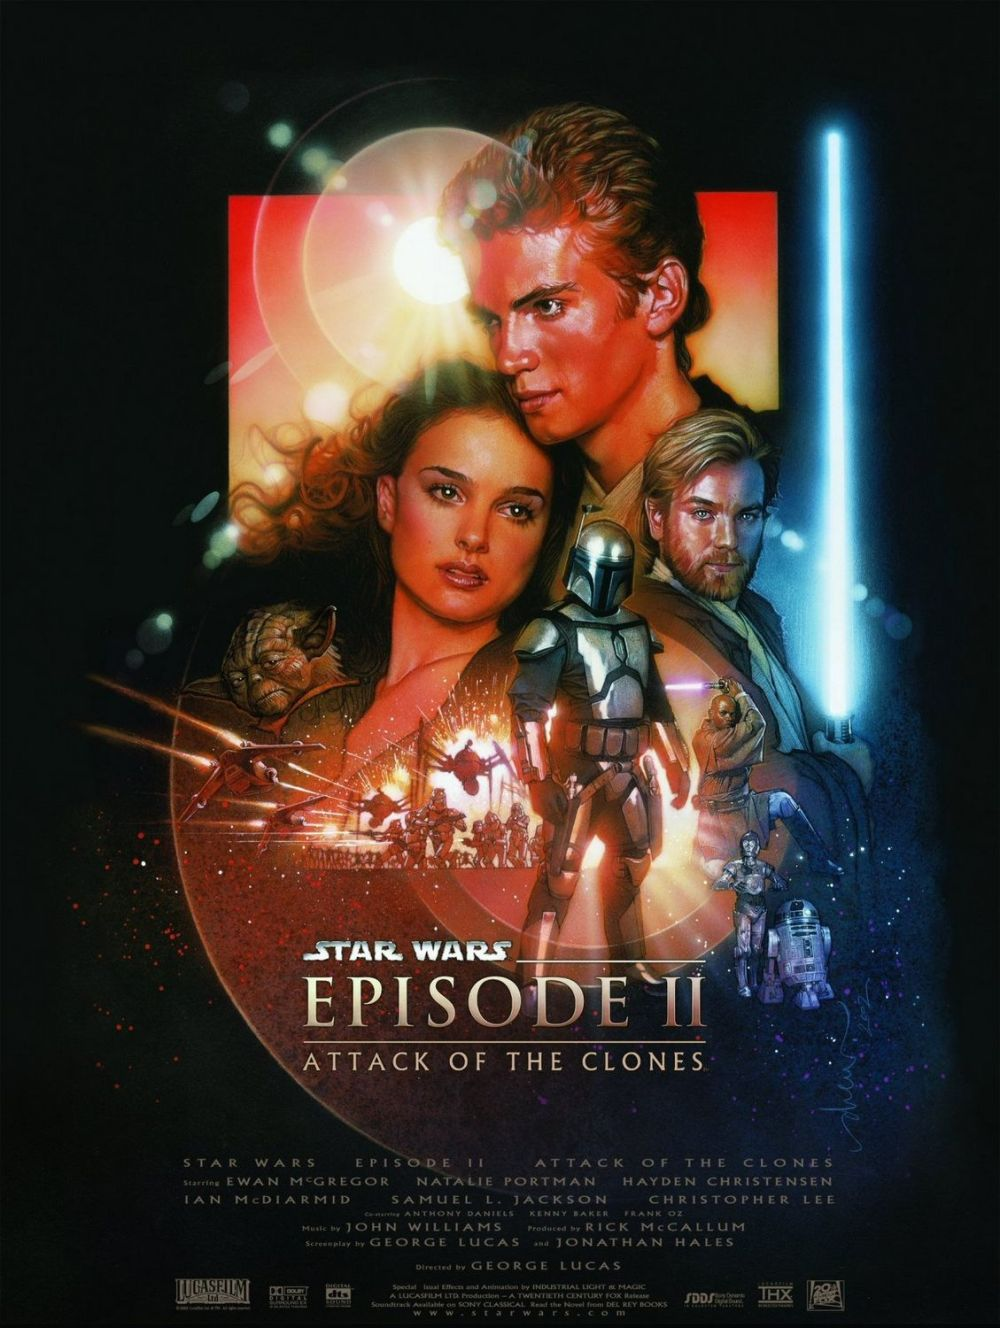 Star Wars: Episode II - Attack of the Clones (2002, 20th Century Fox)